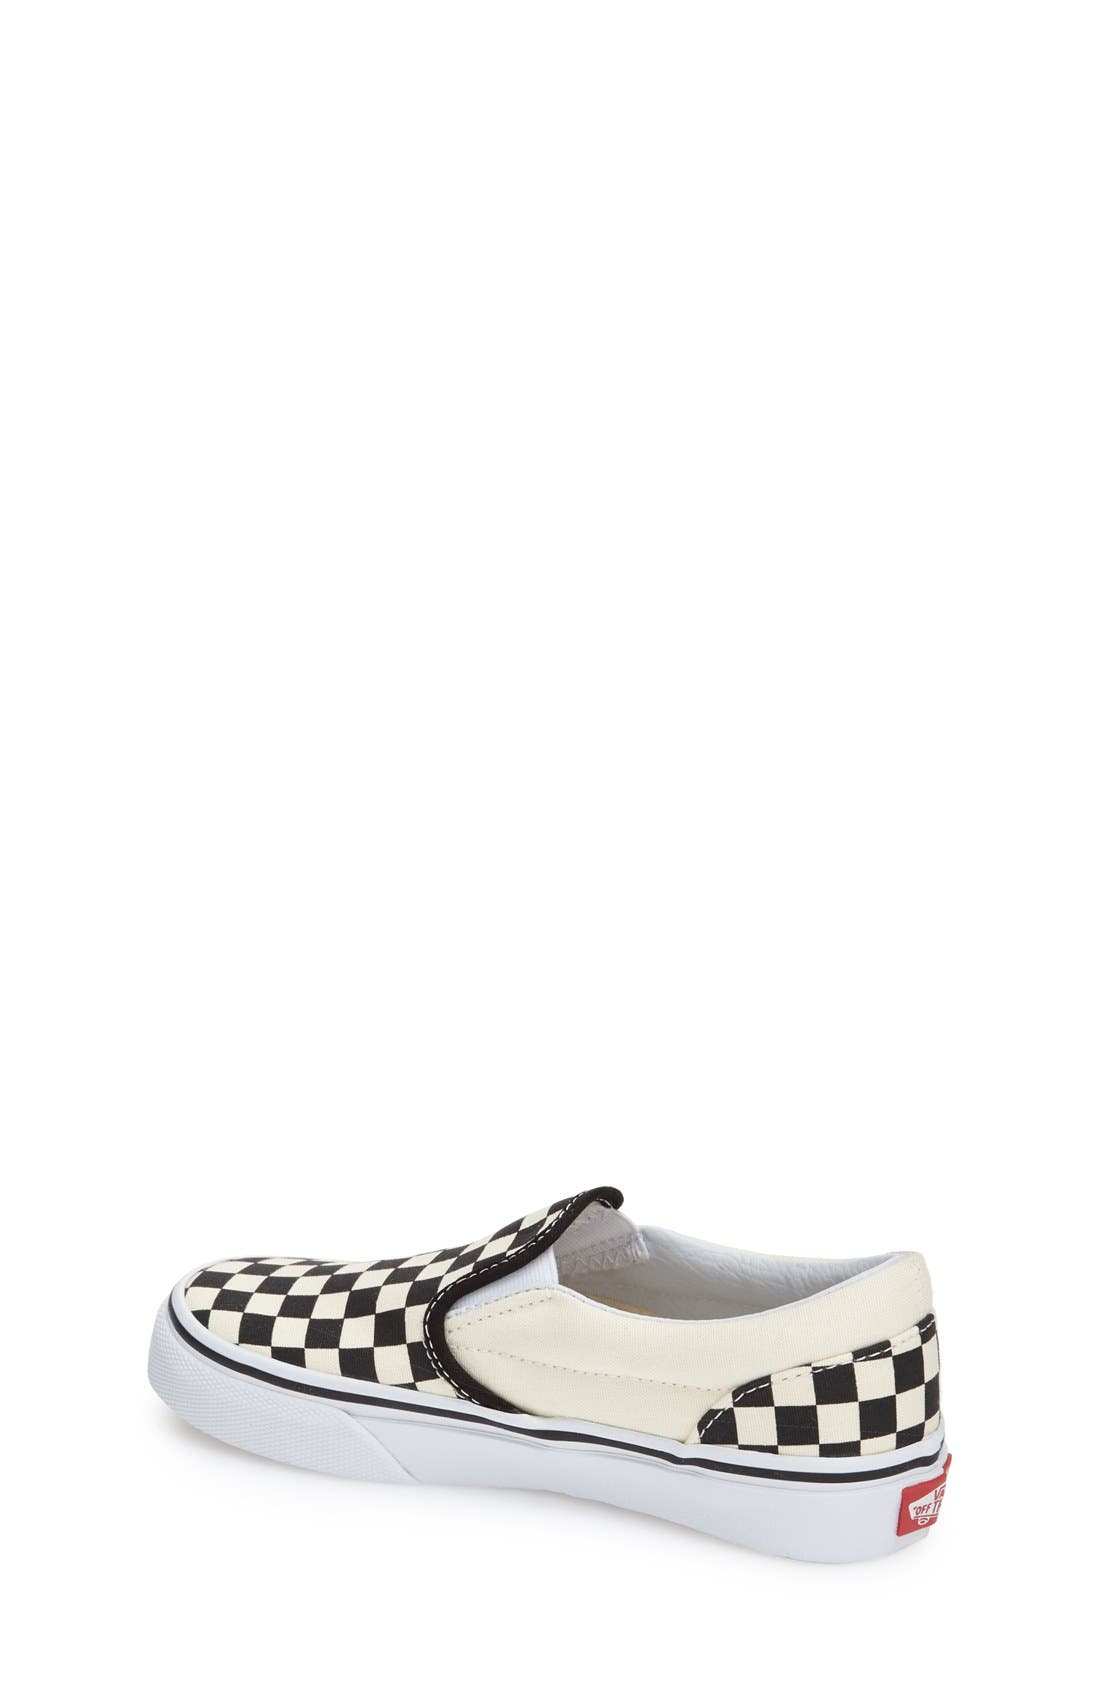 'Classic - Checker' Slip-On,                             Alternate thumbnail 2, color,                             Checkerboard/ Black/ White